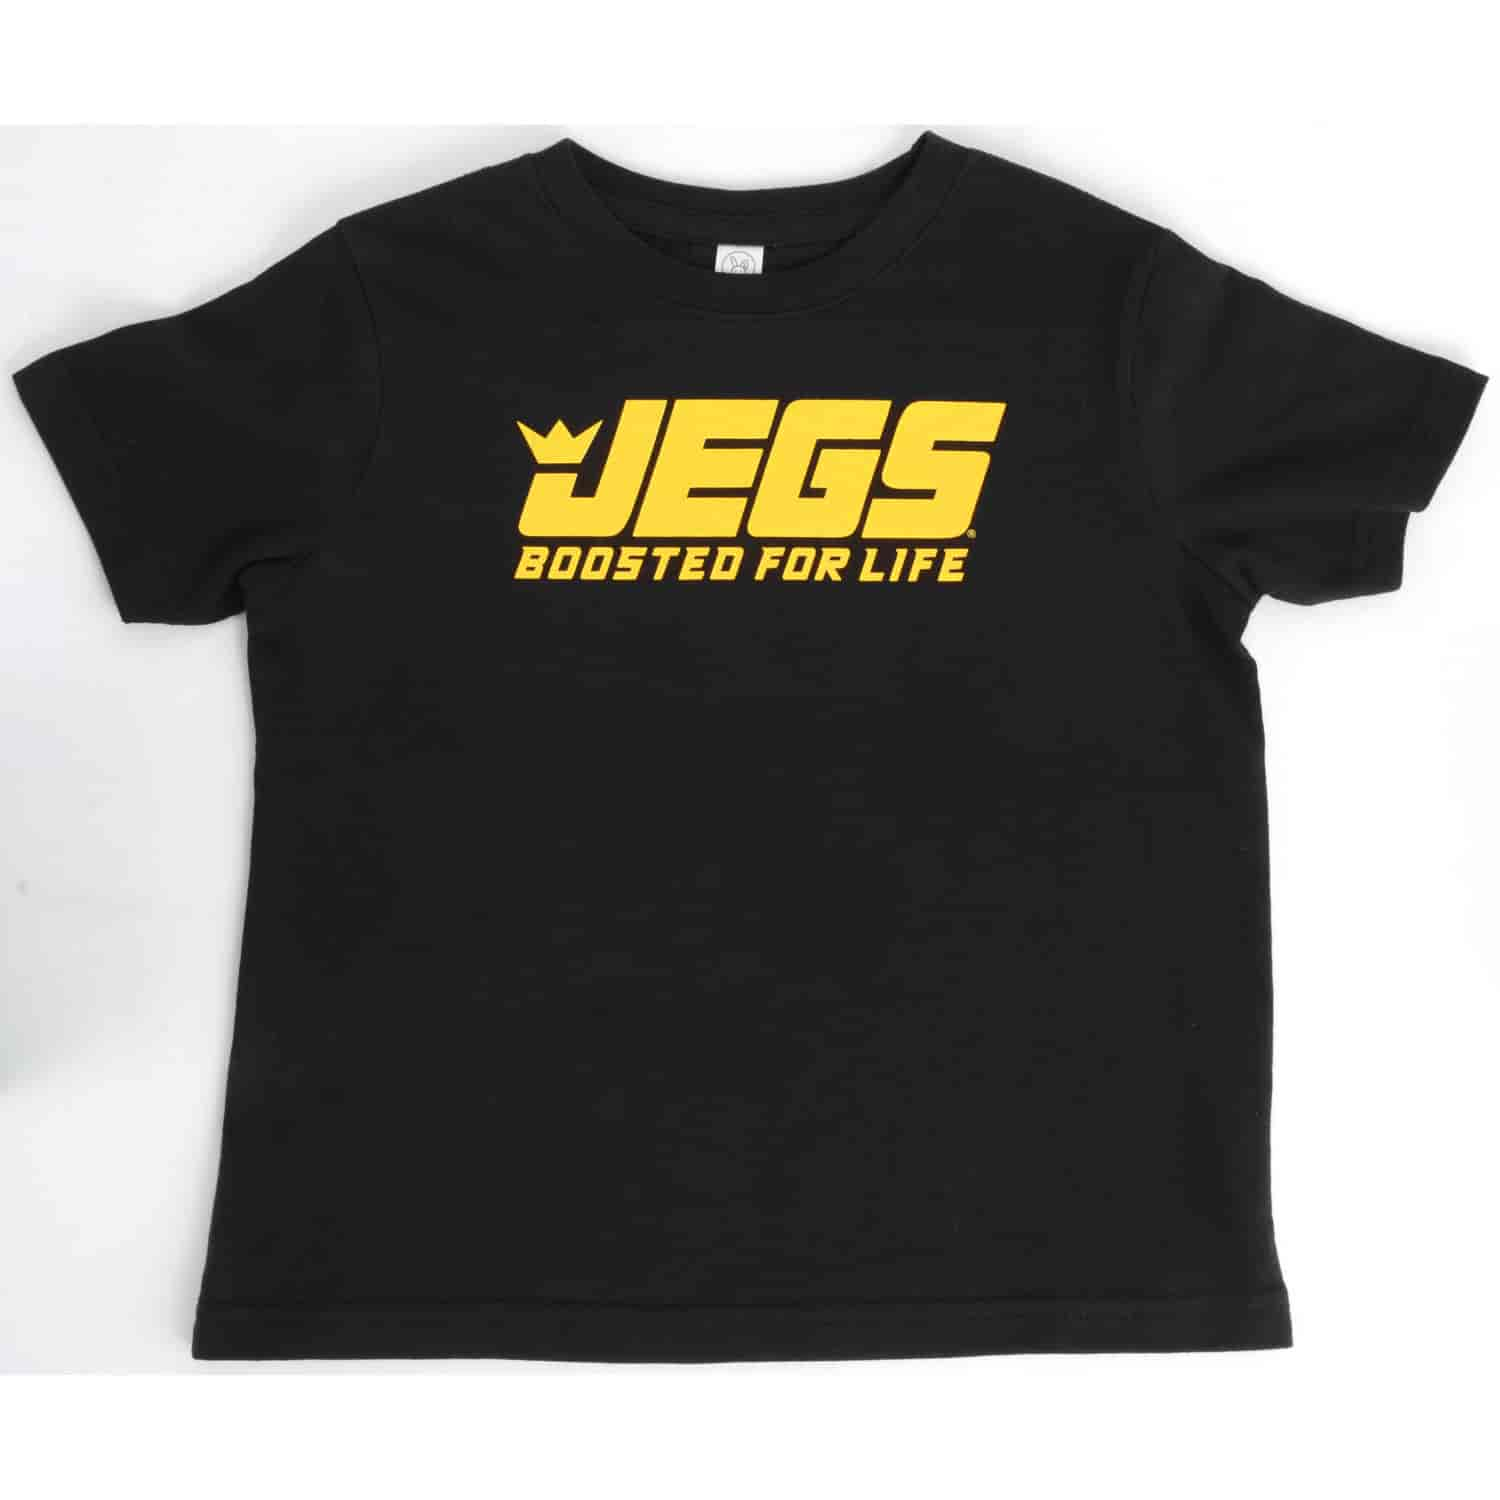 JEGS Apparel and Collectibles 16034